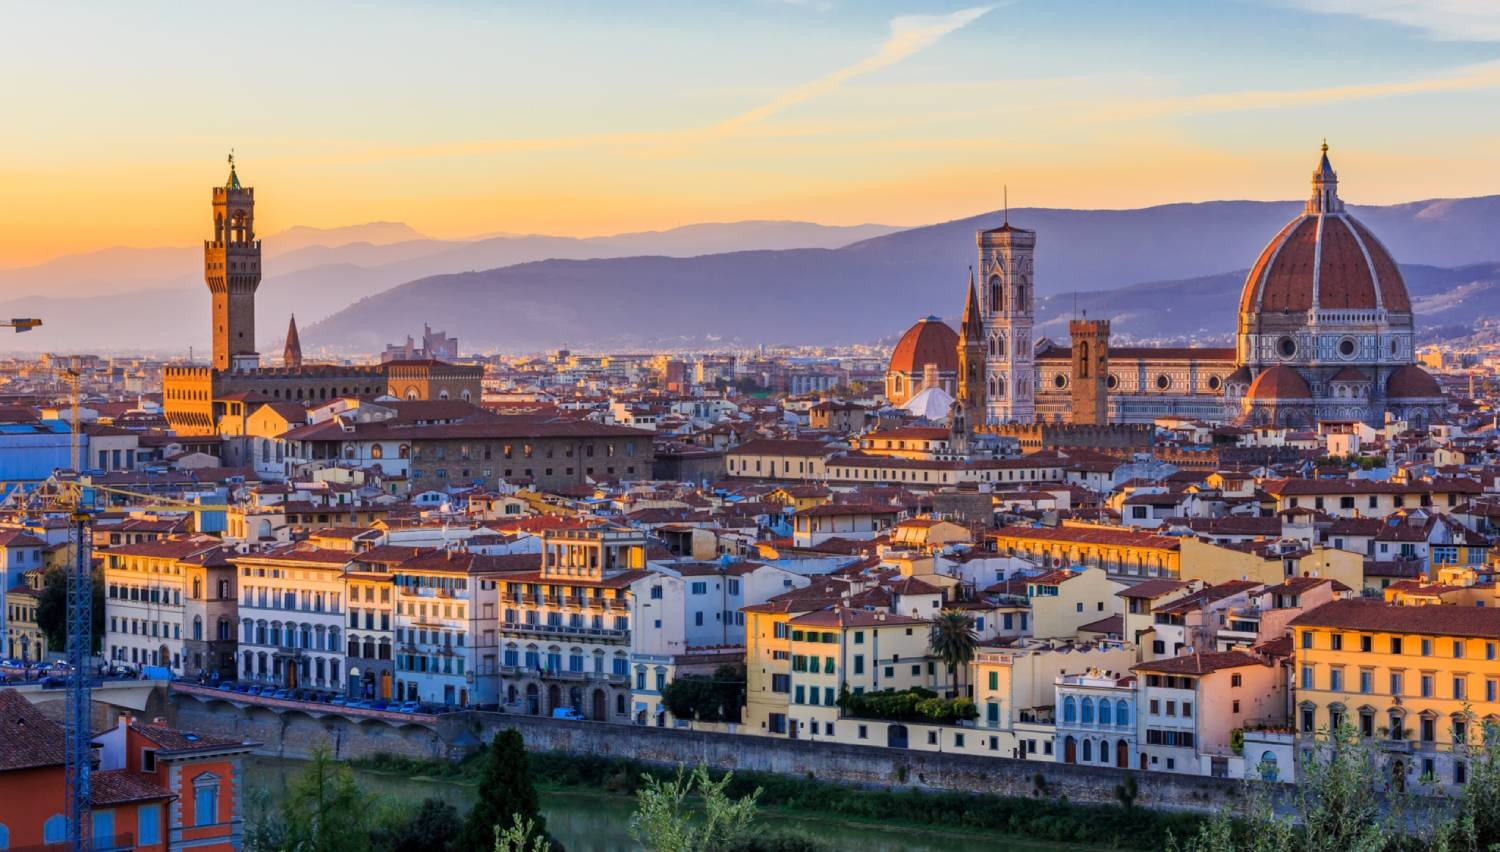 Piazzale Michelangelo - Things To Do In Florence